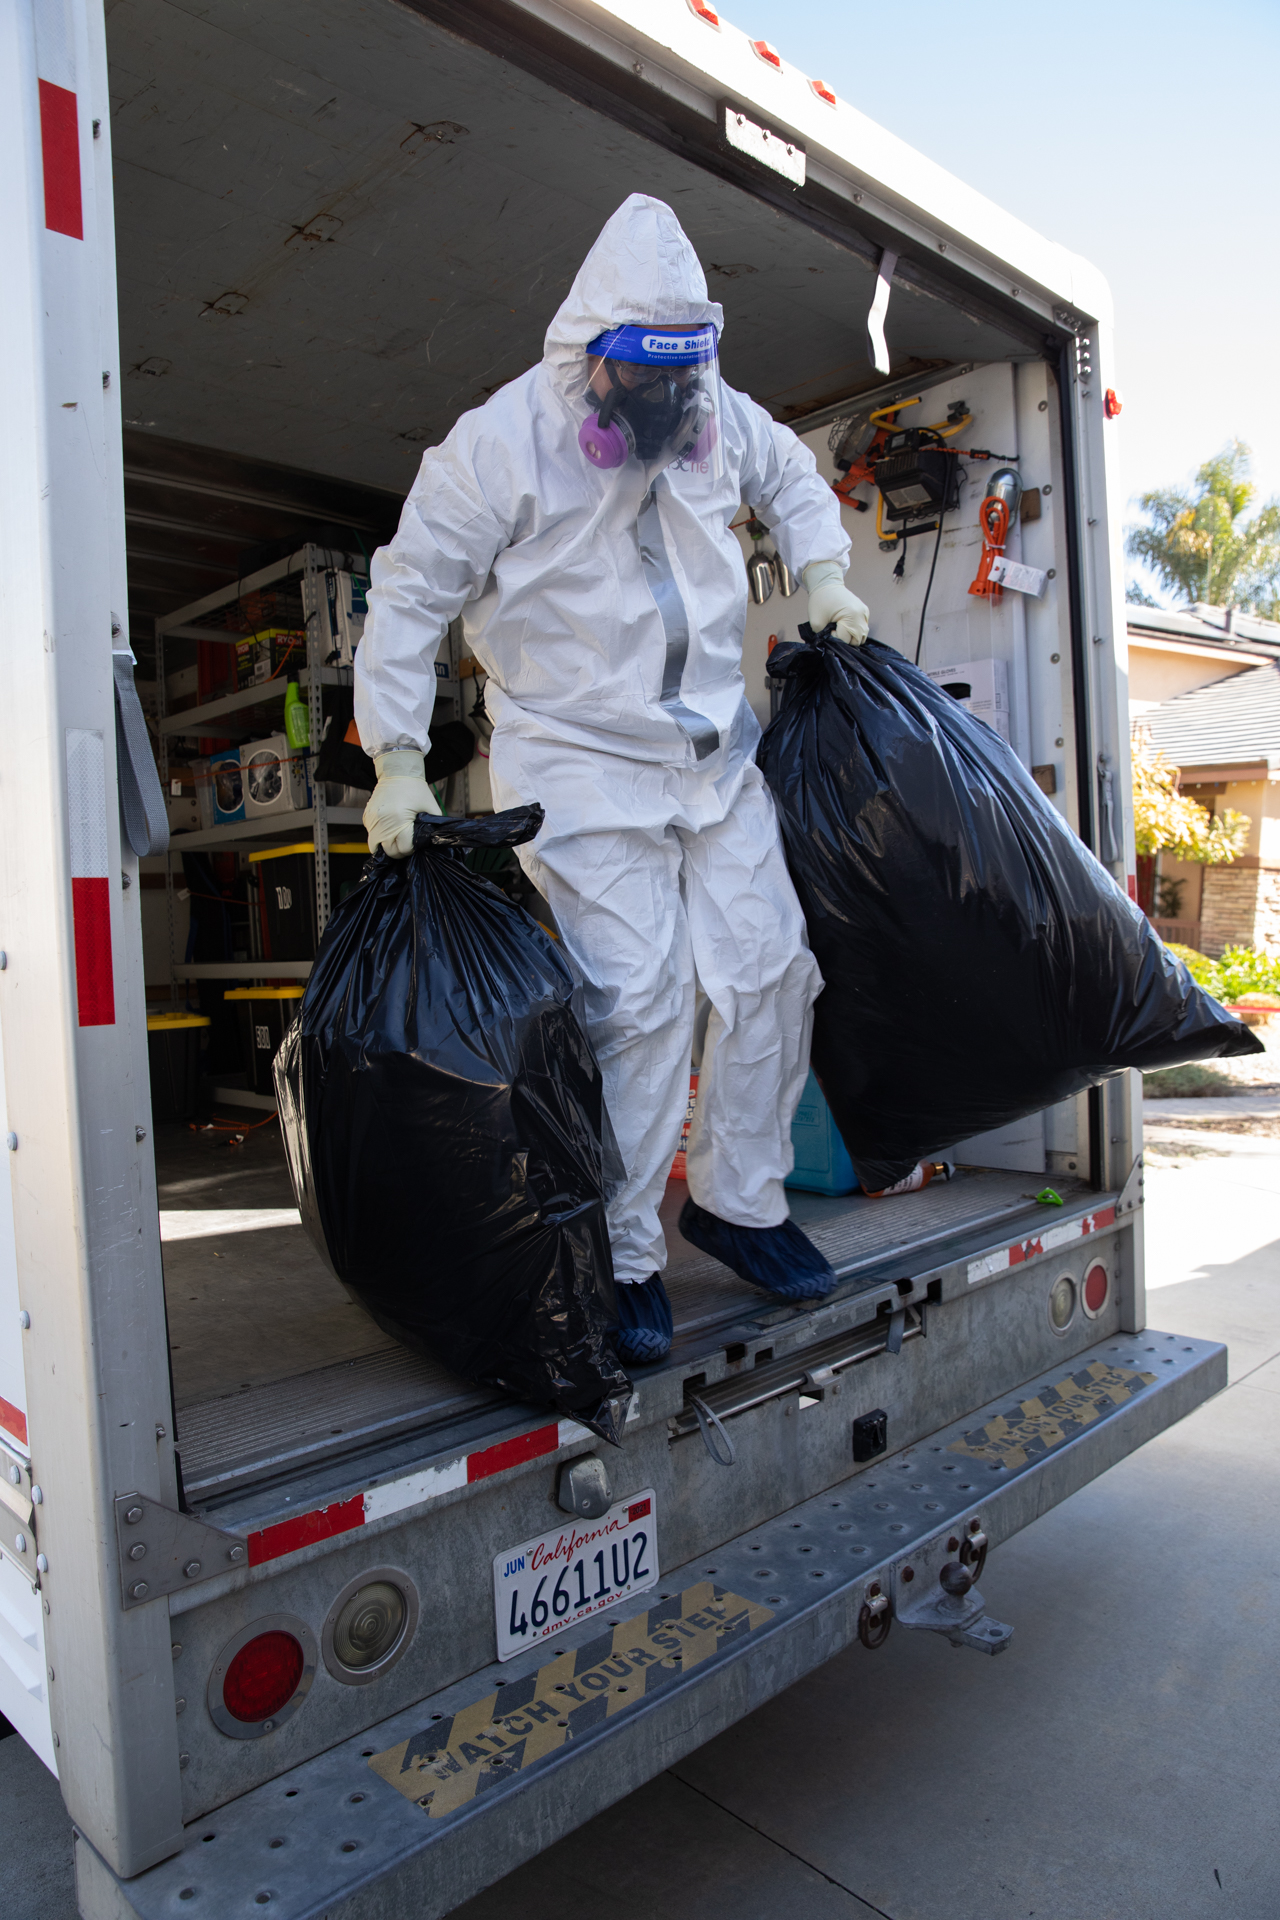 Image shows Bio-One of Oceanside technicians disposing of trash after servicing a rodent dropping scenario.